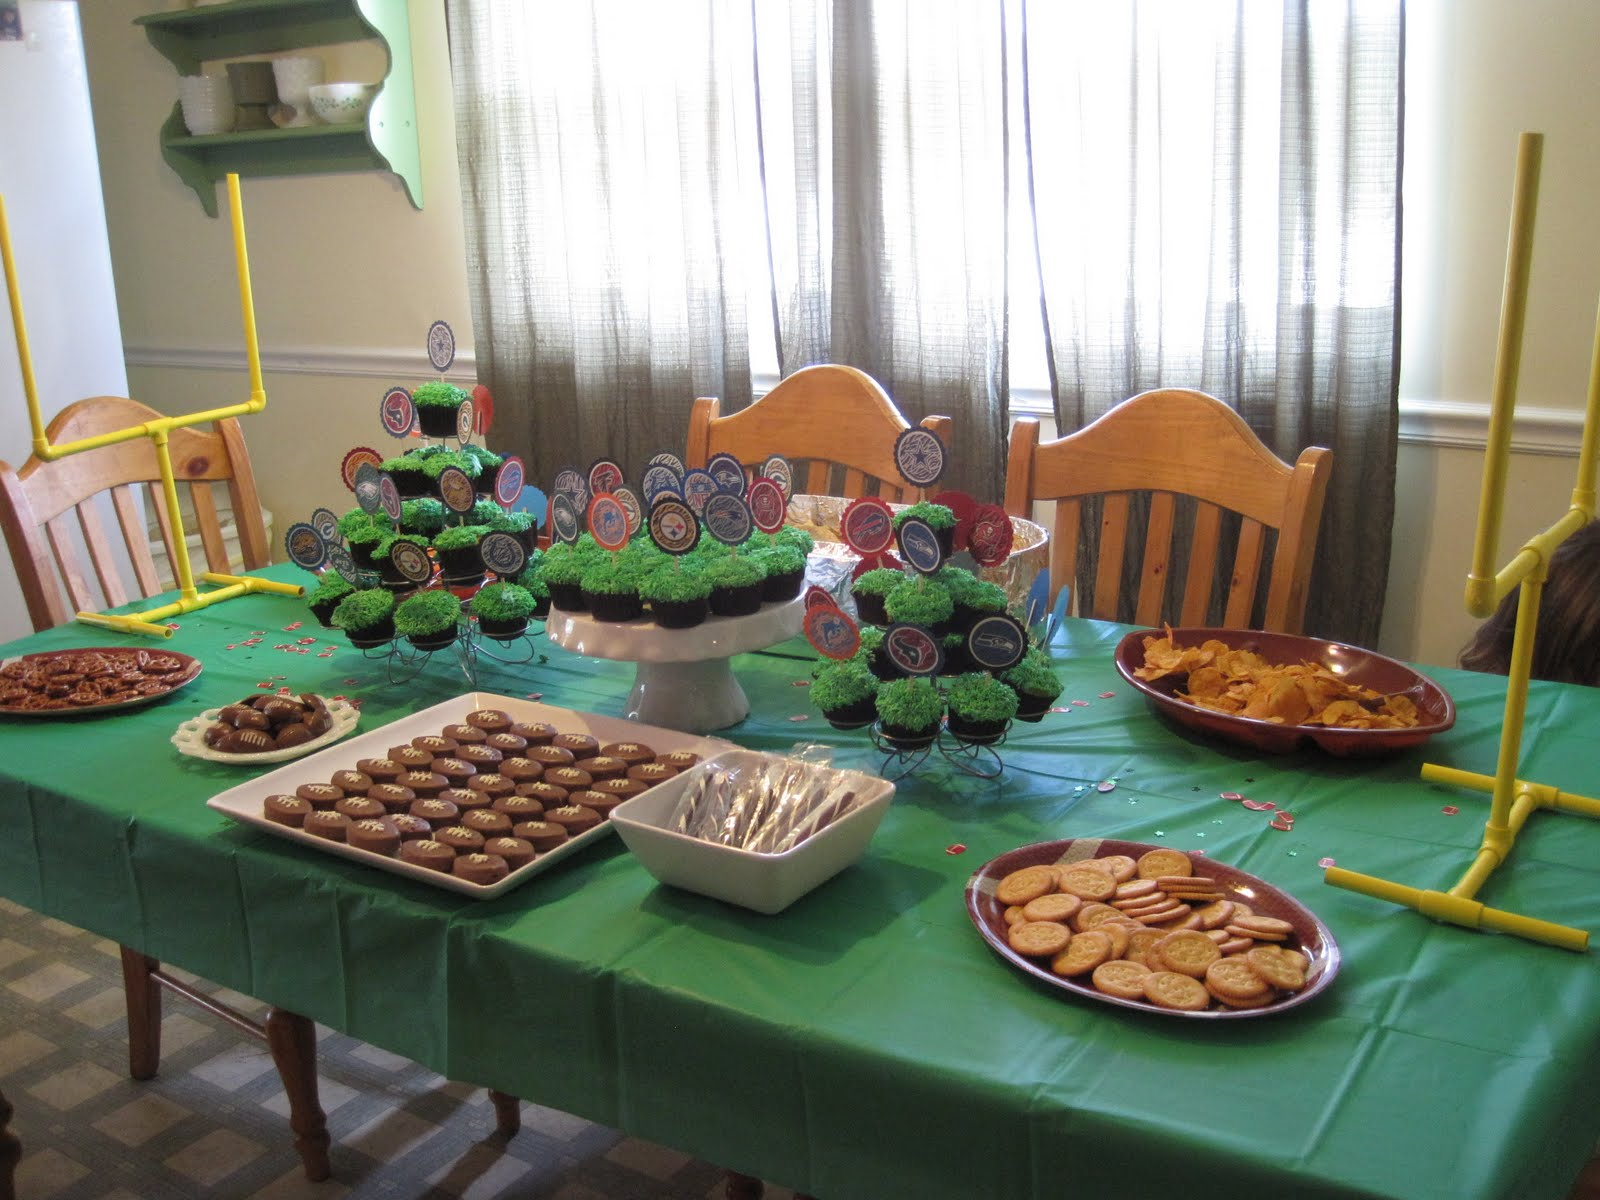 ramblings from the sunshine state: football birthday party - last